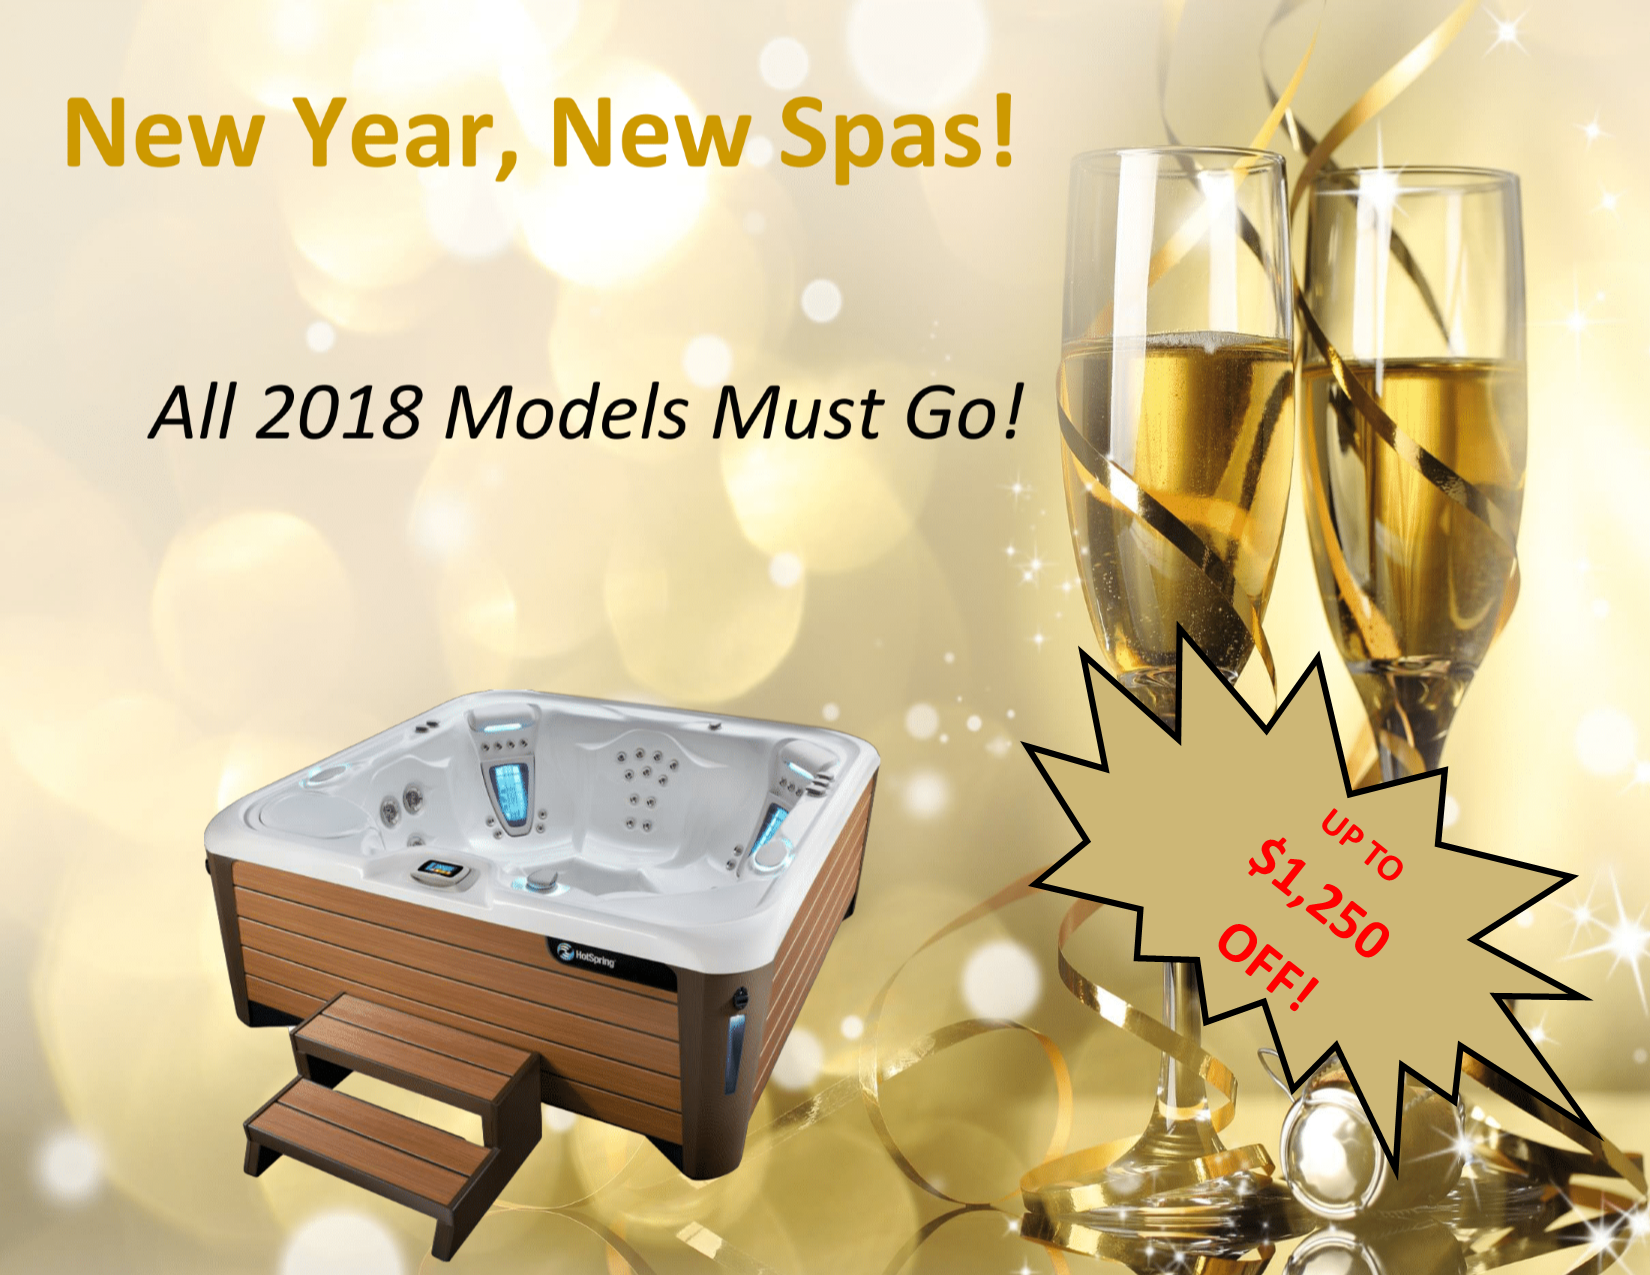 New Year, New Spa